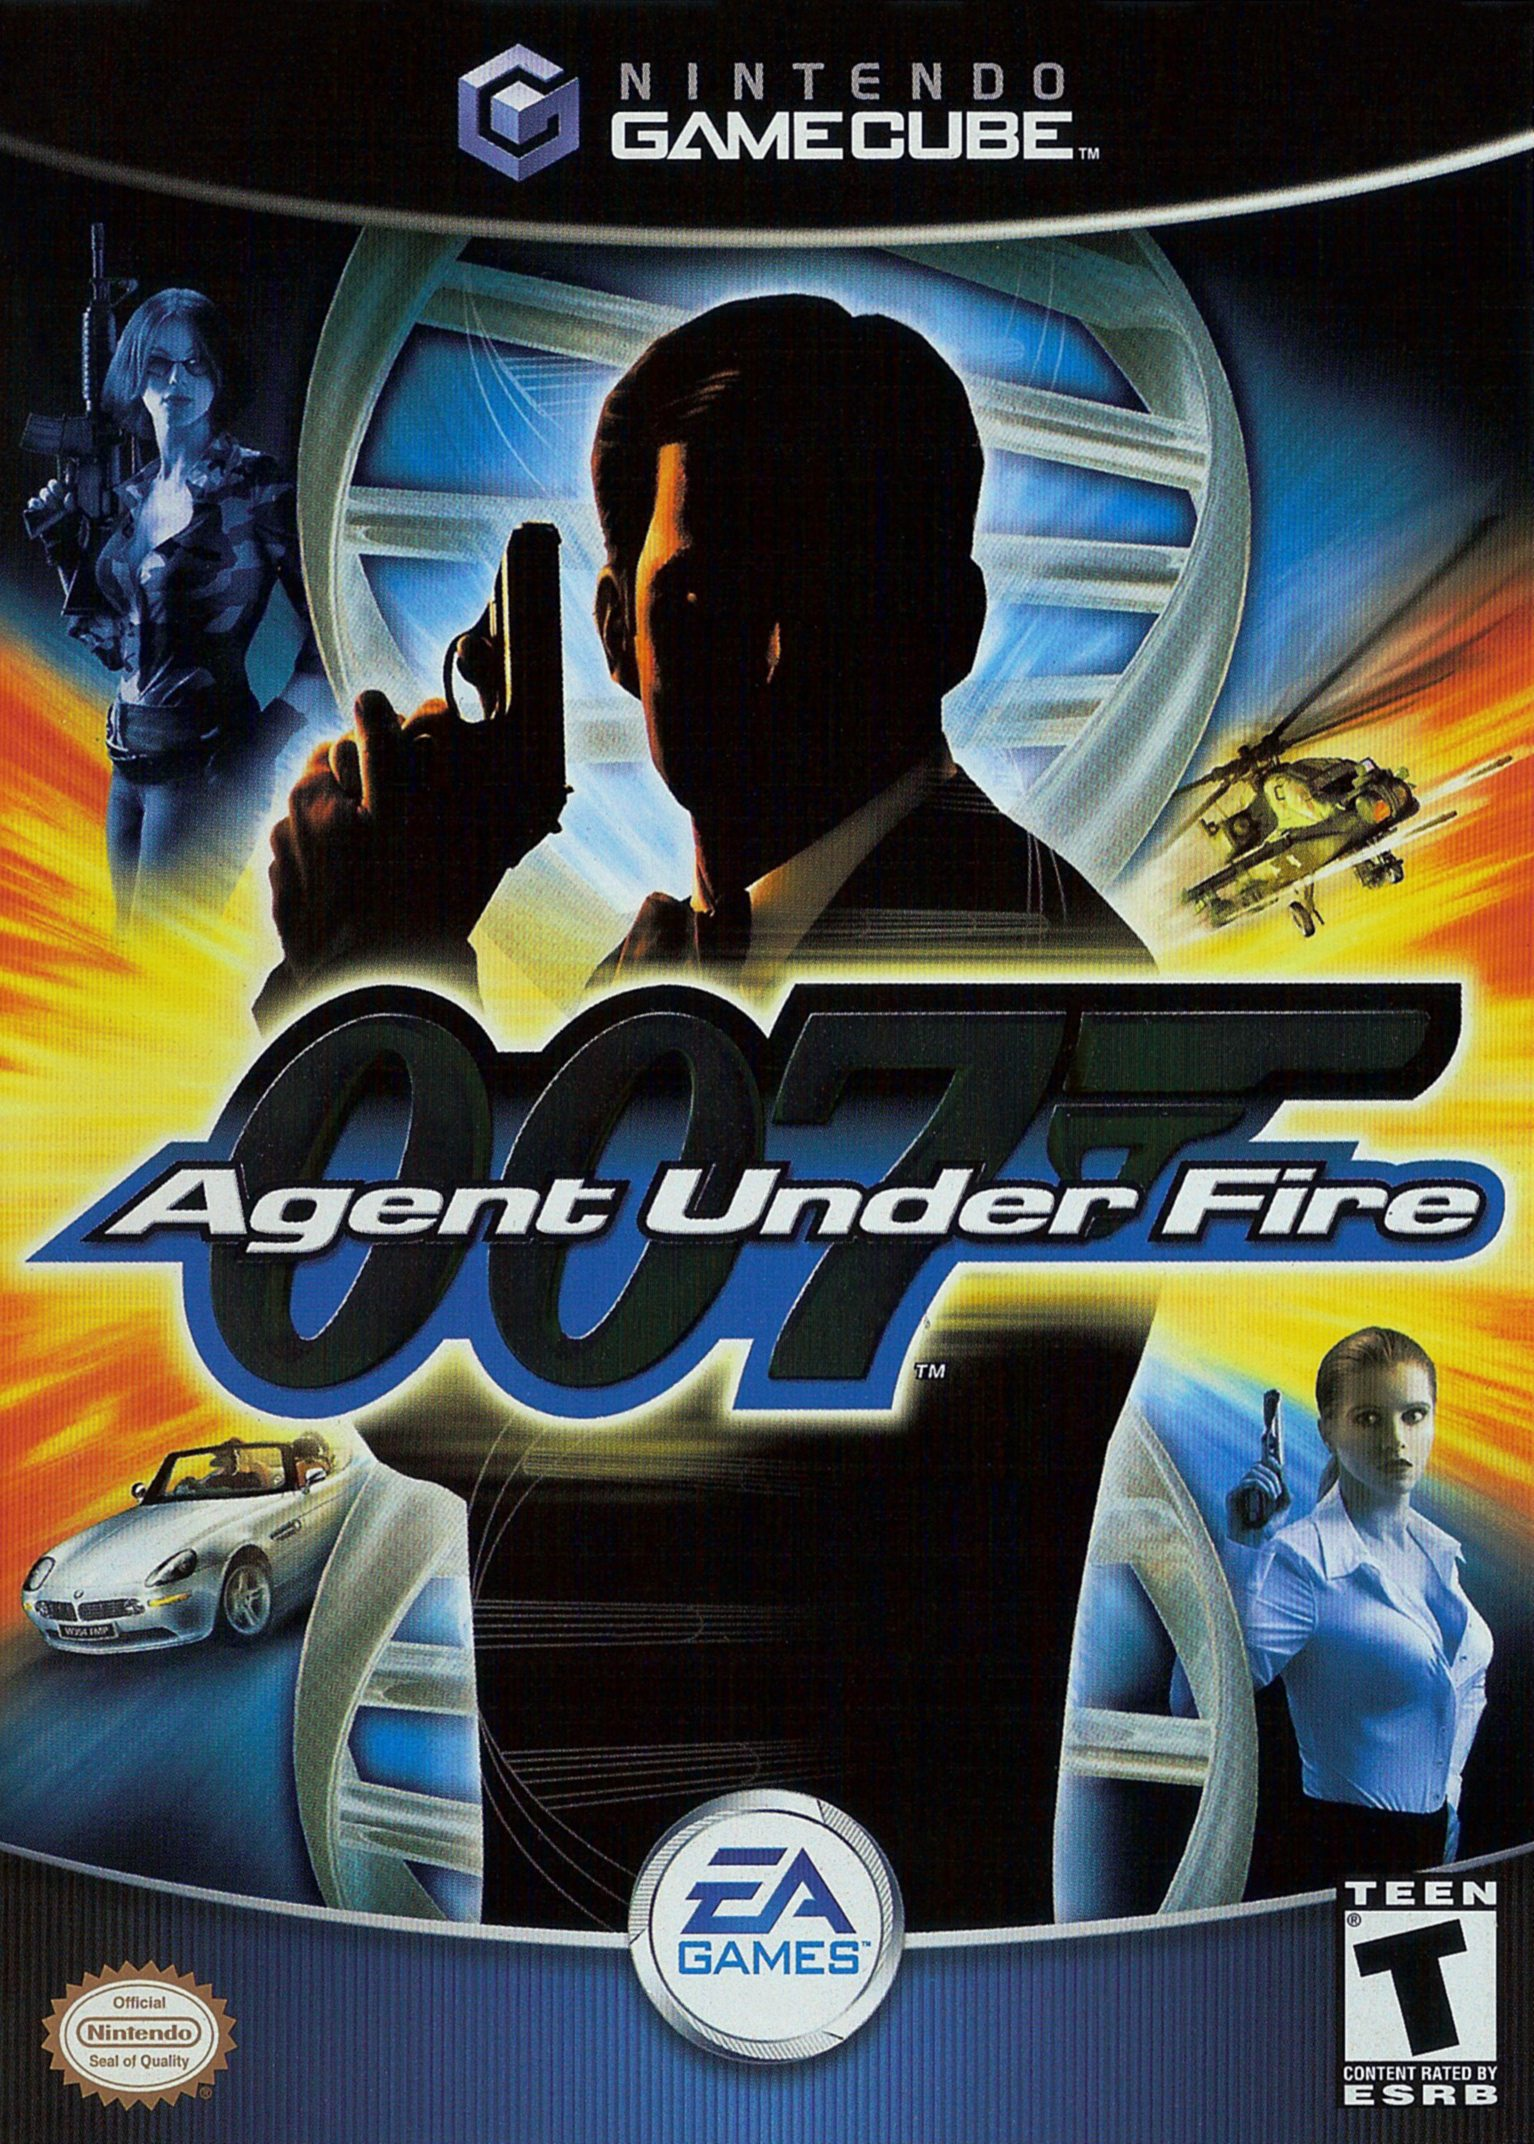 007 Agent Under Fire/GameCube